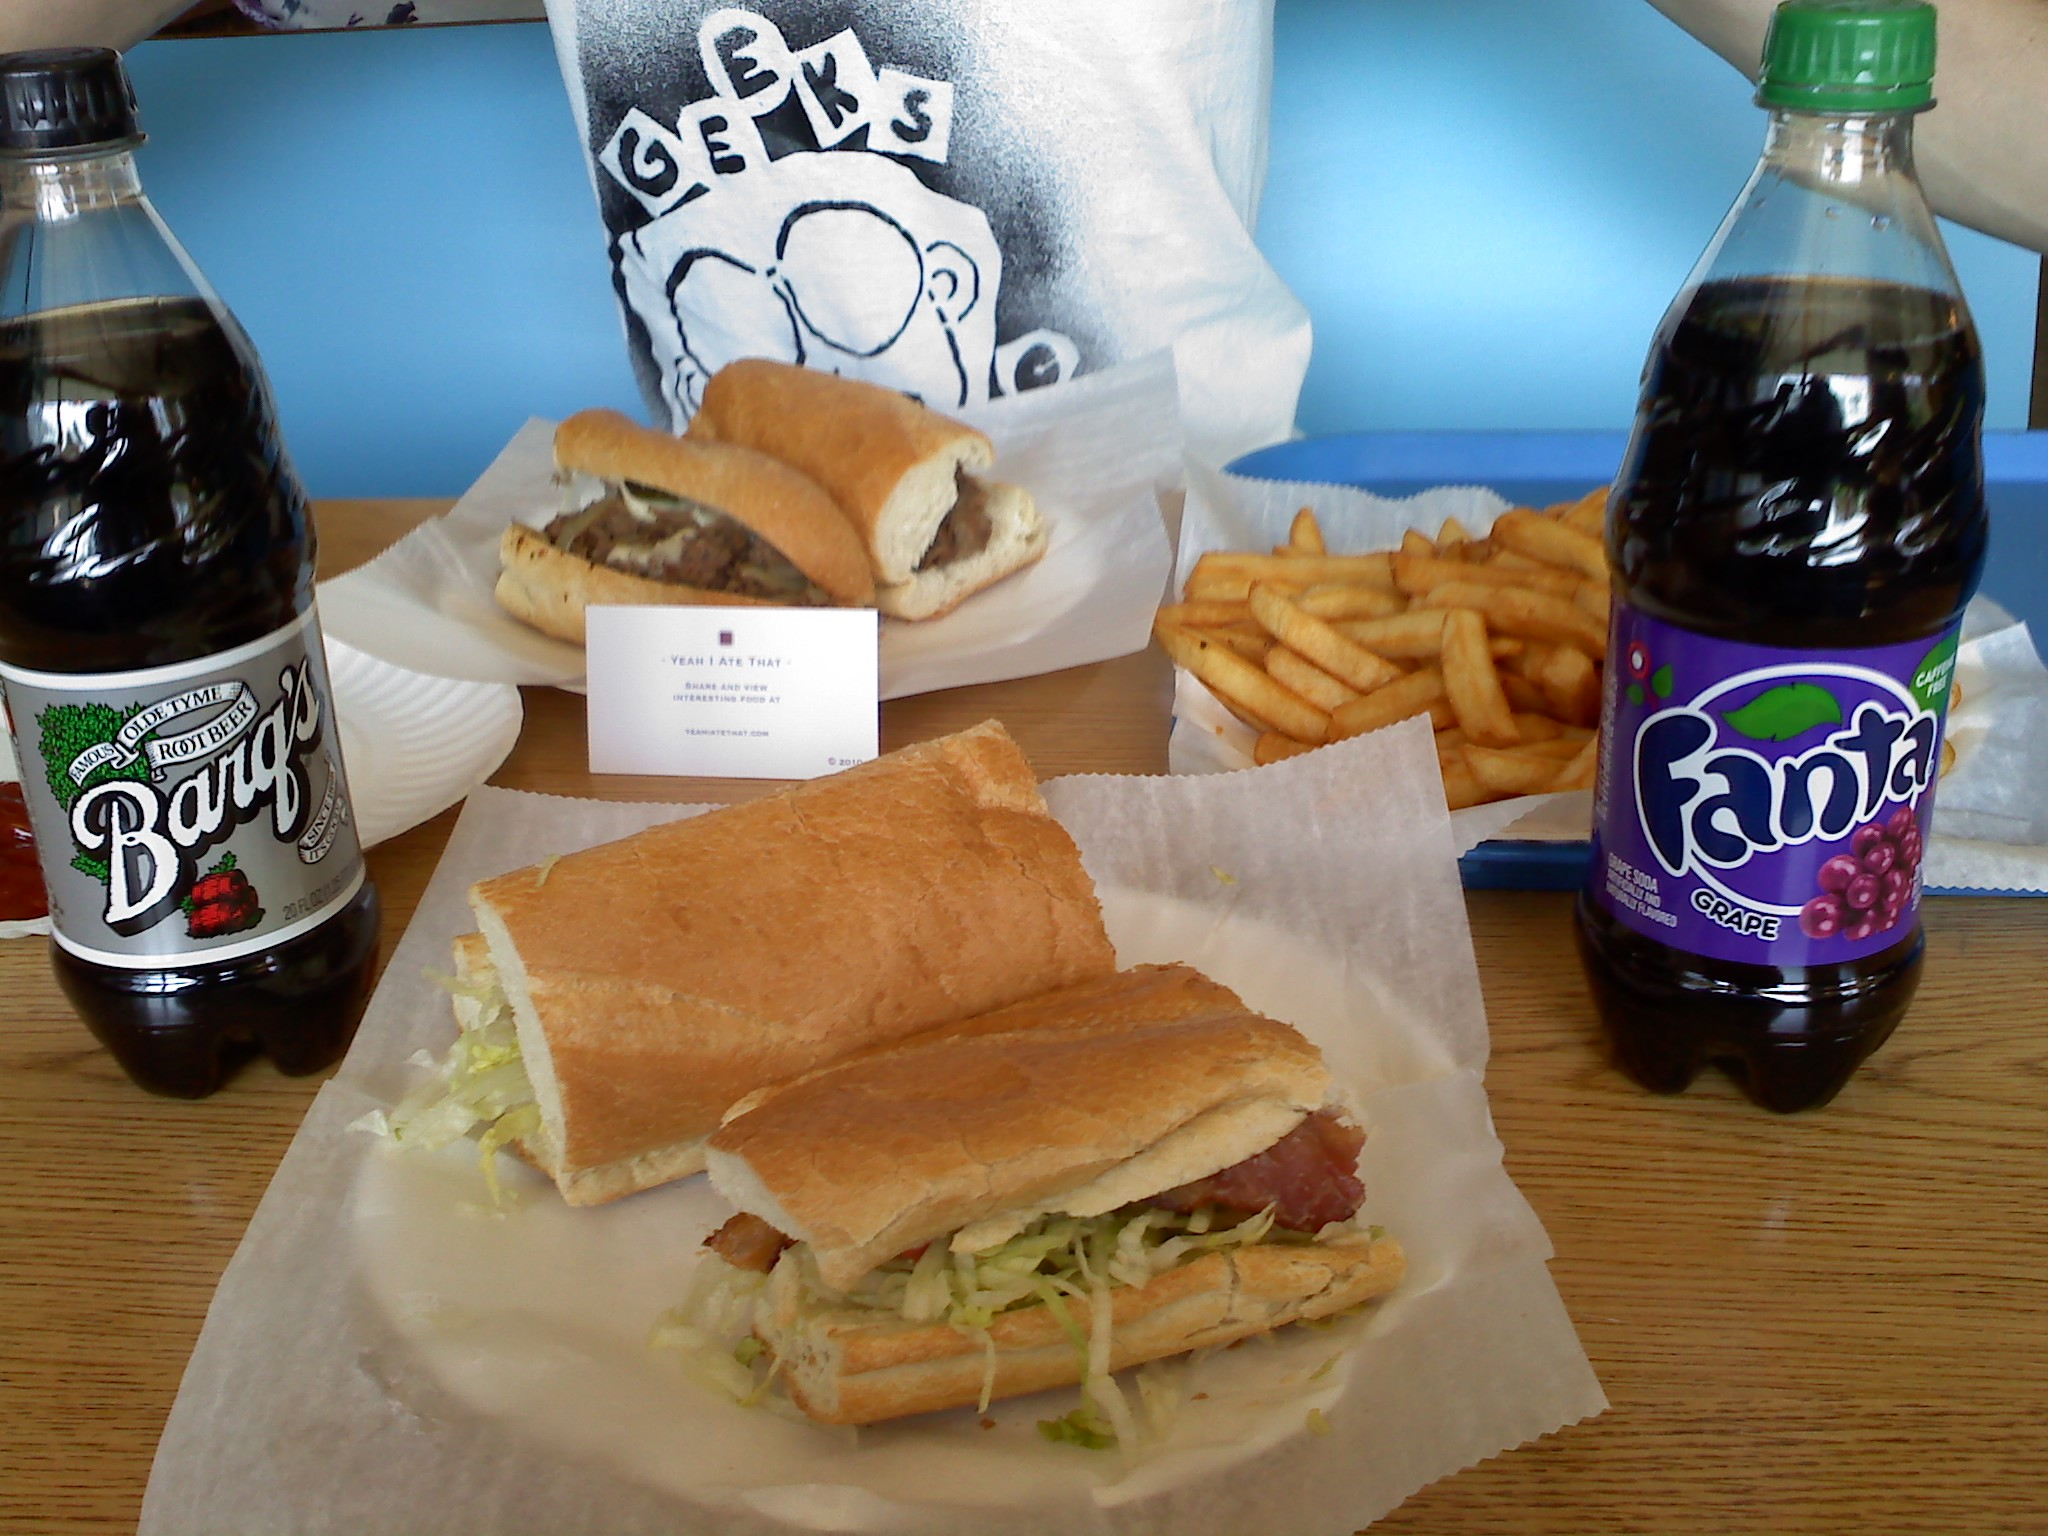 Milano House of Pizza, Milford NH :: Steak and Cheese with onions/peppers, BLT sub, small fries and 2 sodas